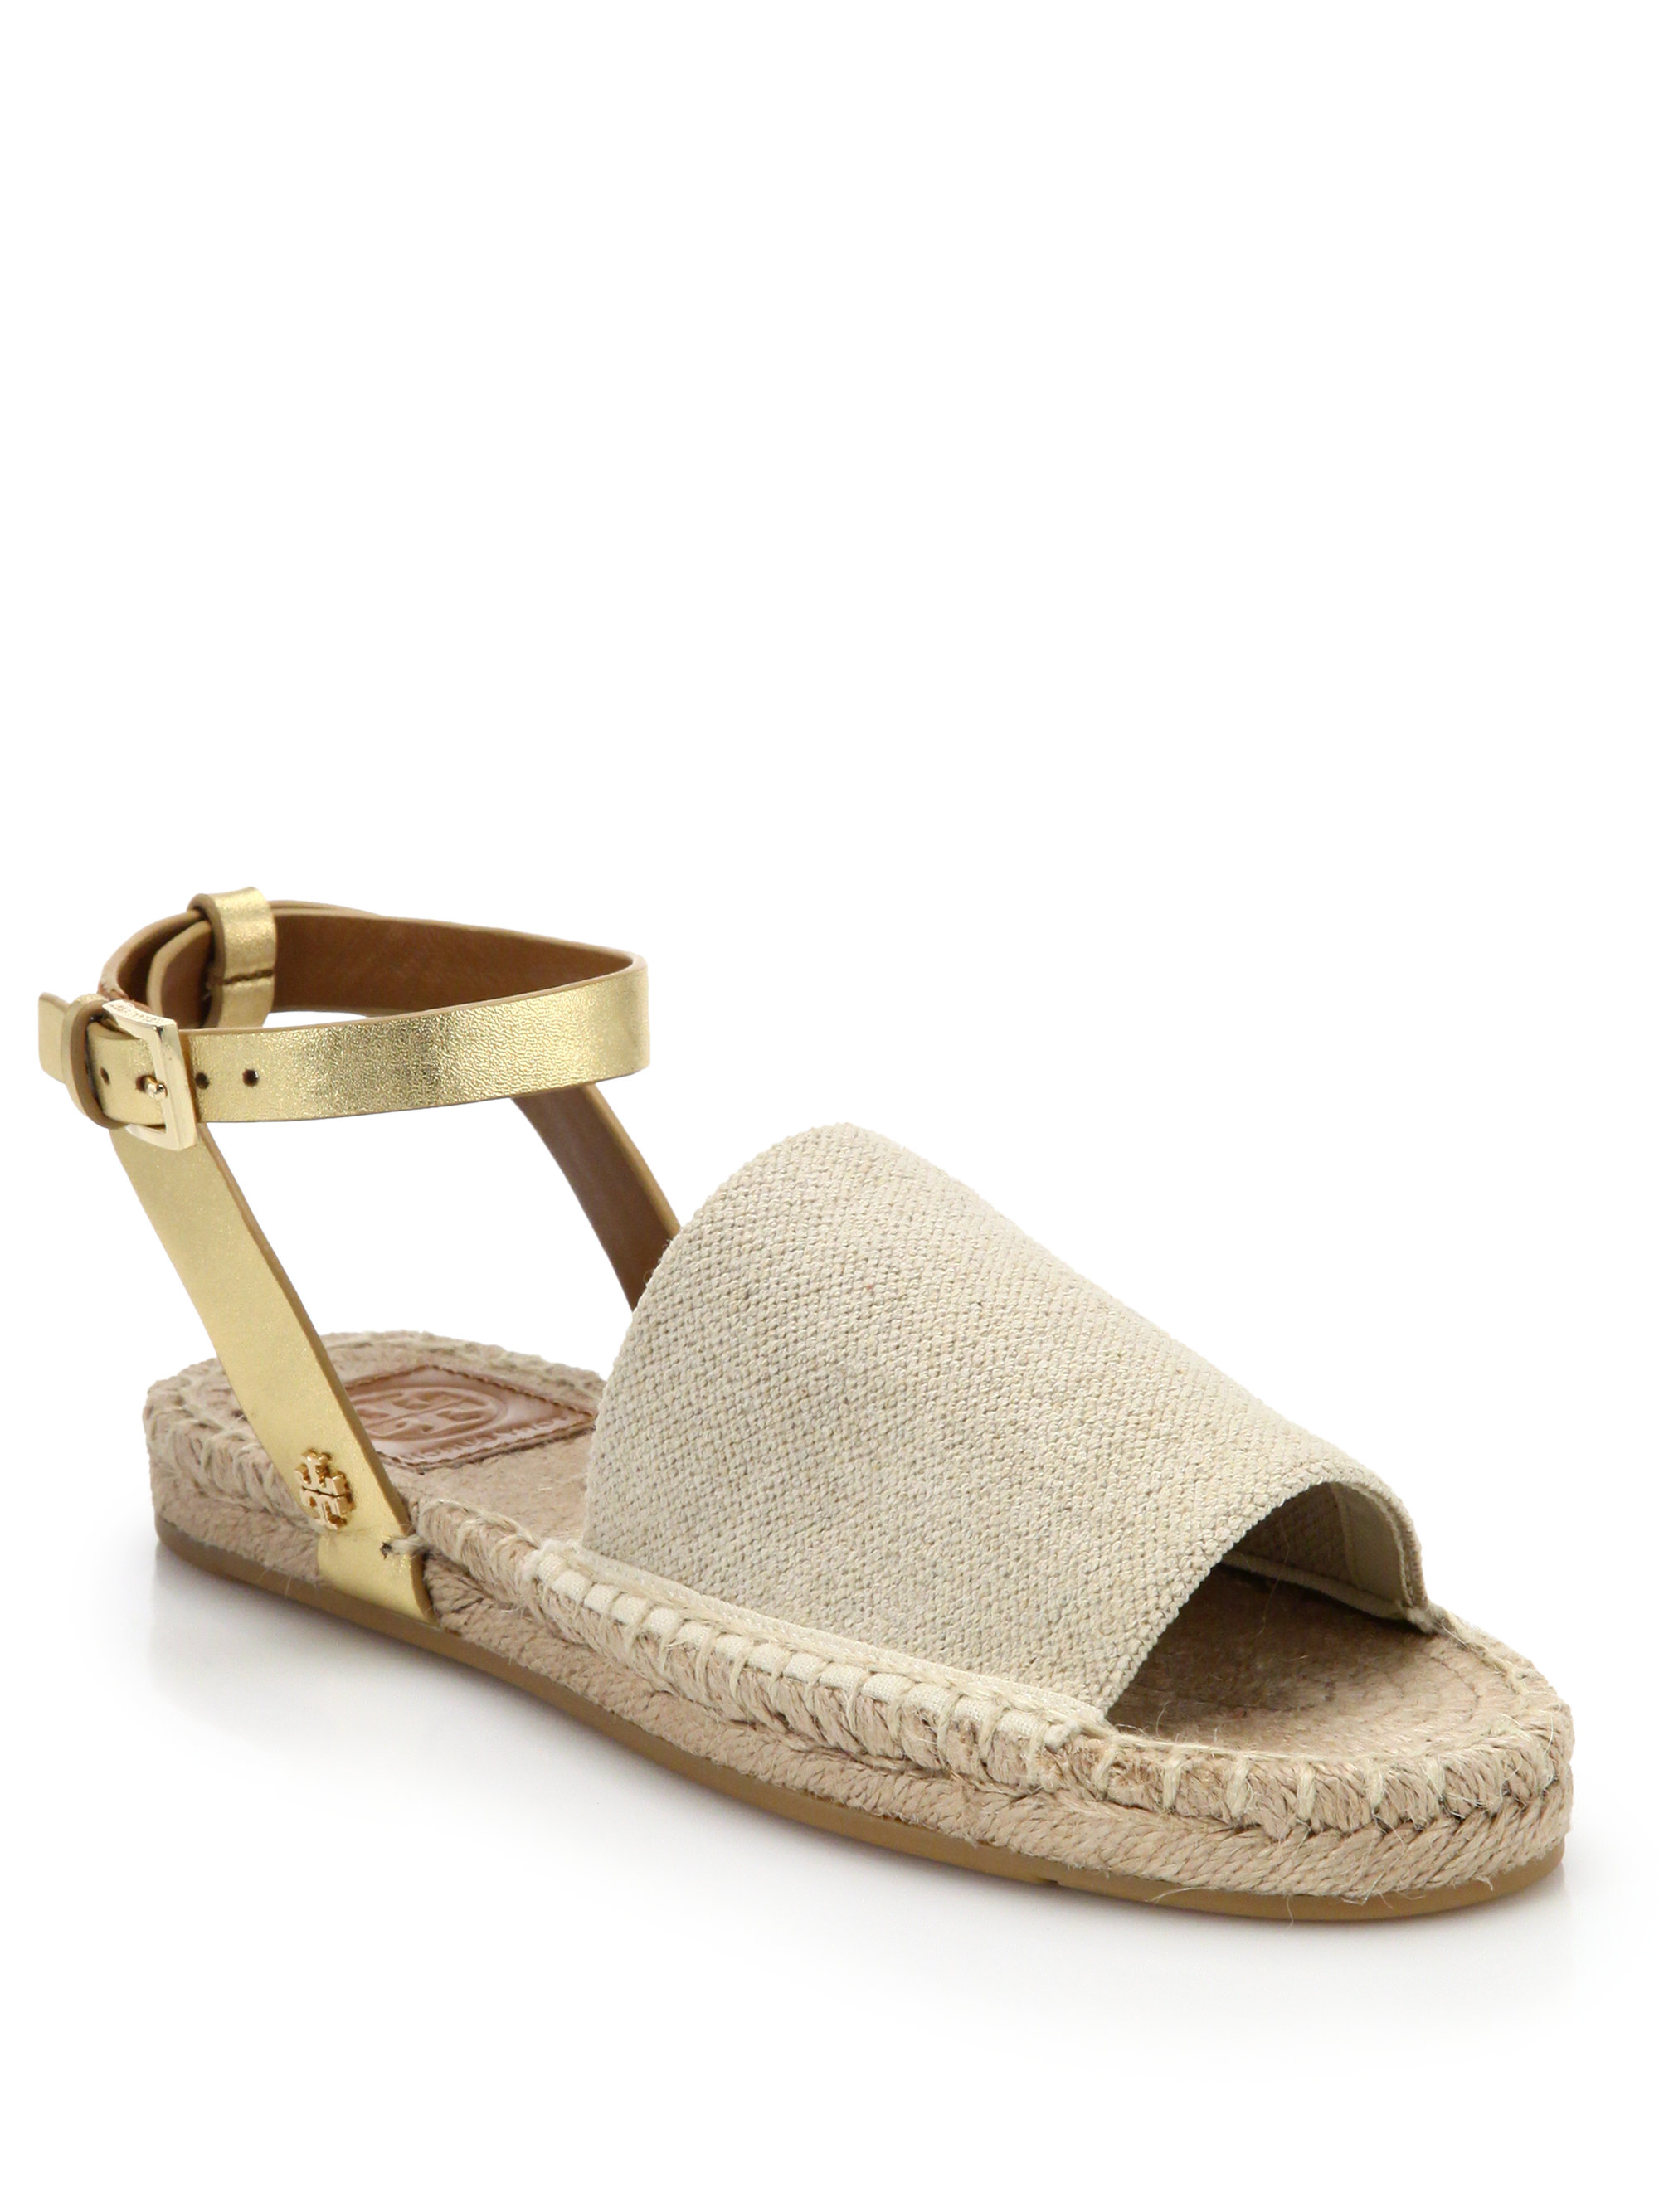 436aa872e Lyst - Tory Burch Metallic Leather   Woven Espadrille Sandals in Natural